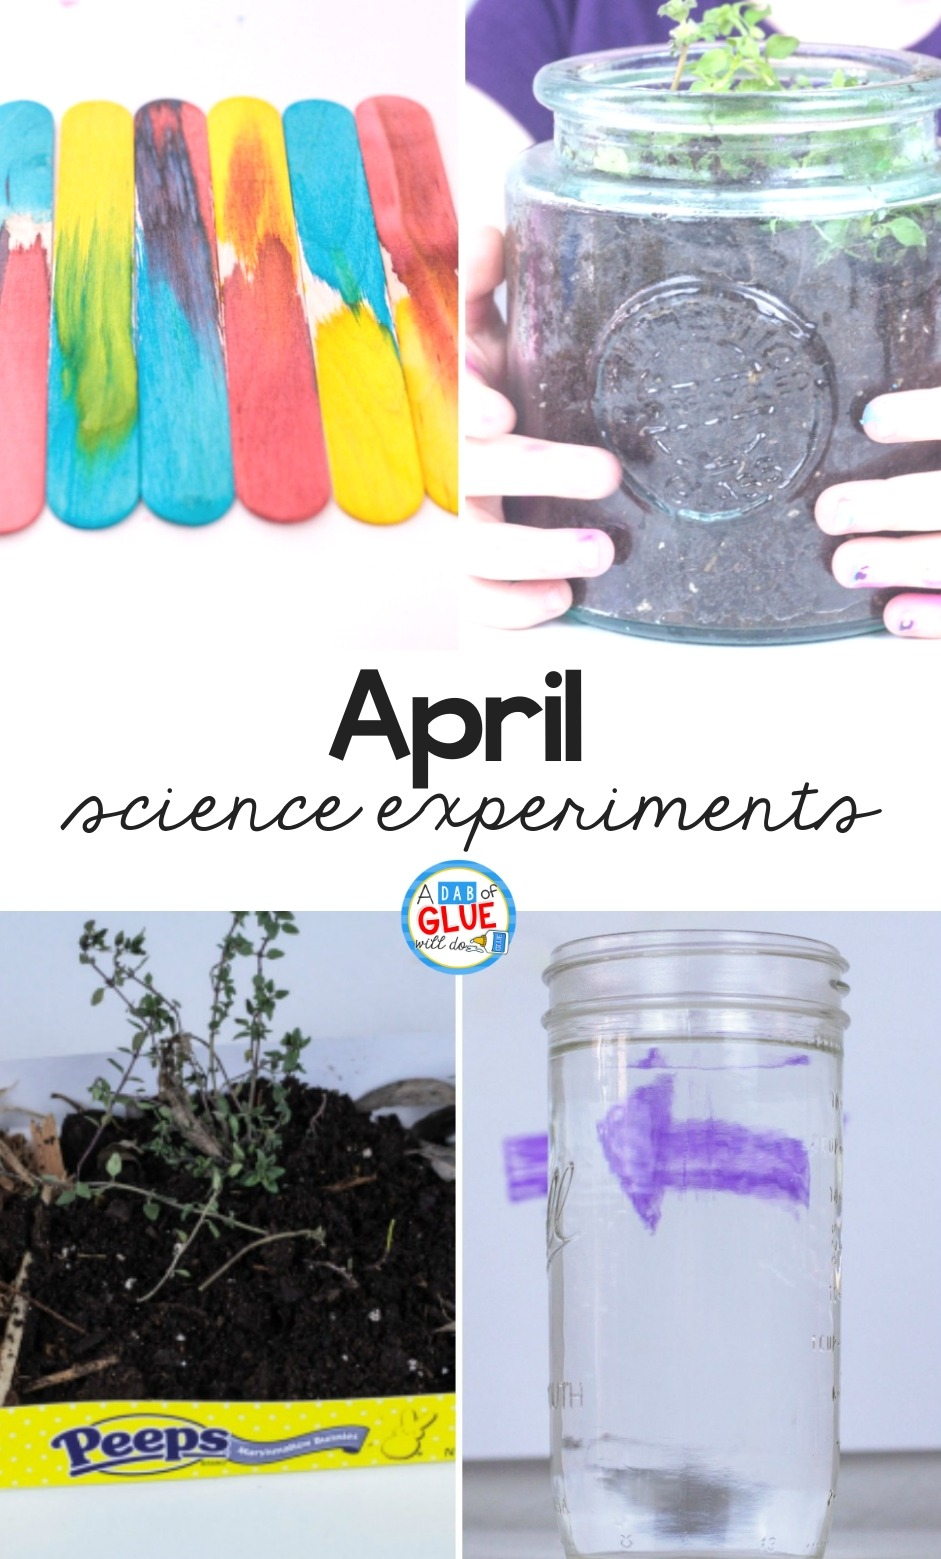 4 experiments for the month of April